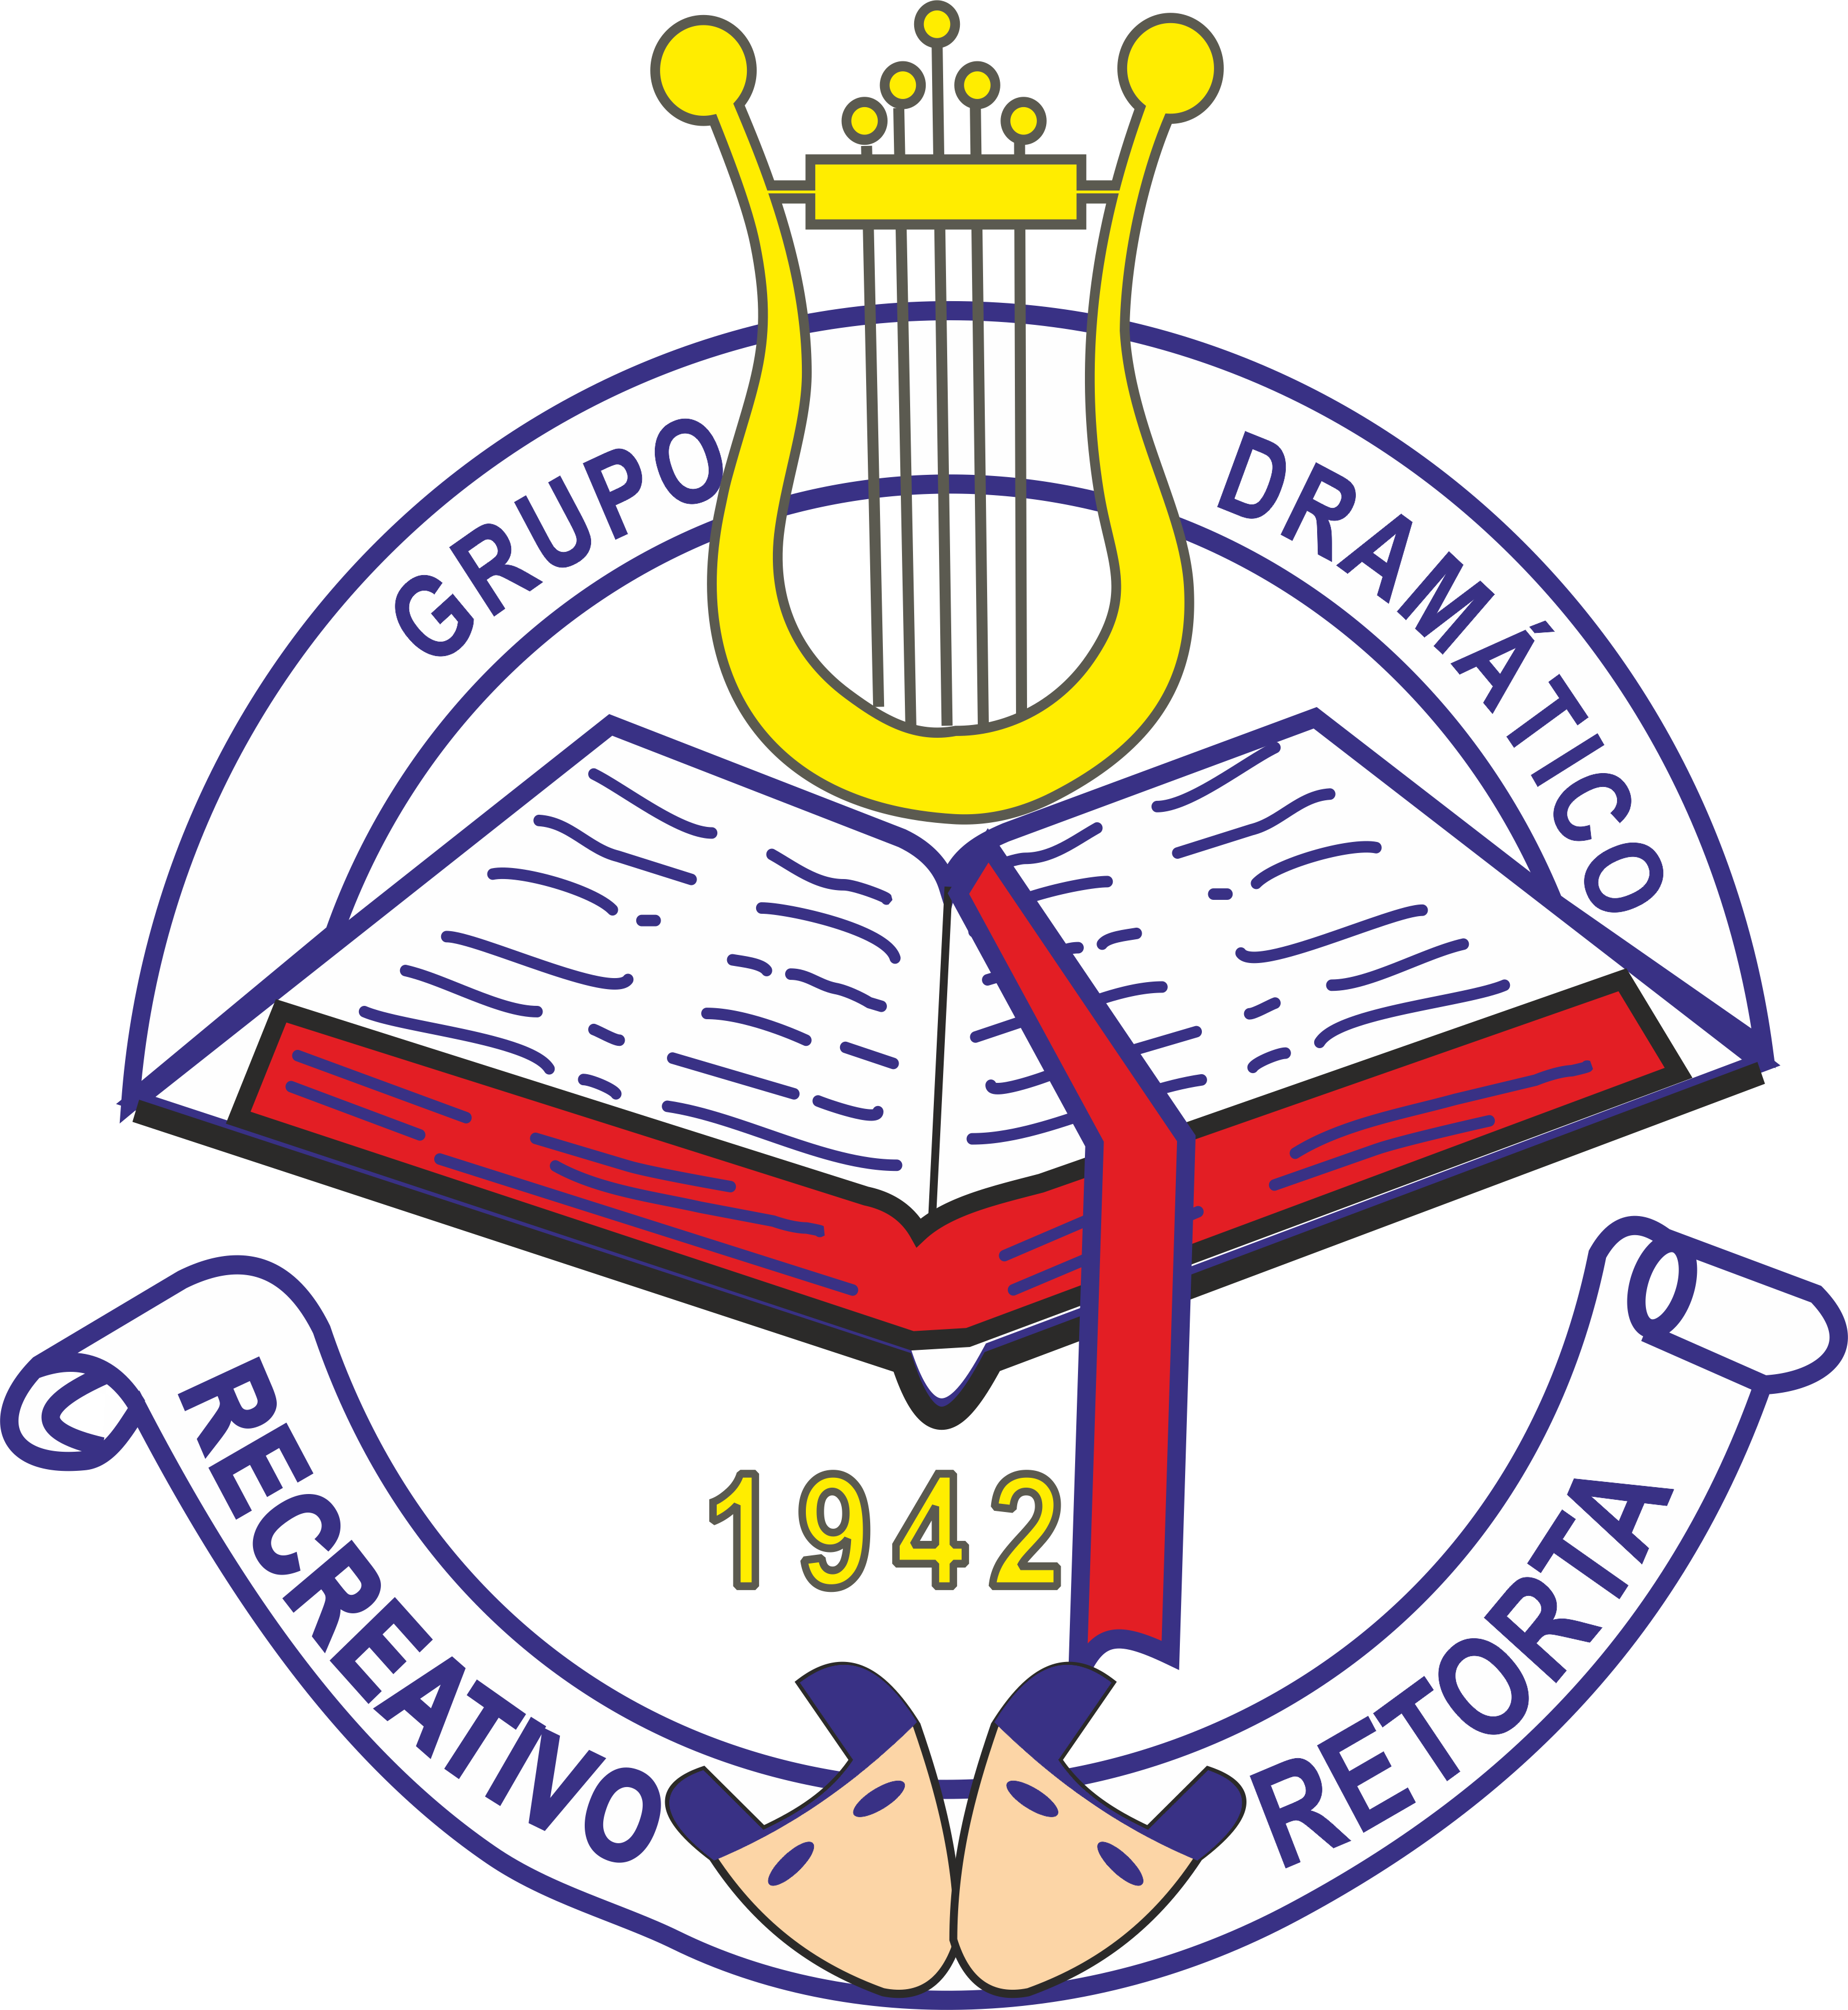 GRUPO DRAMATICO RECREATIVO RETORTA